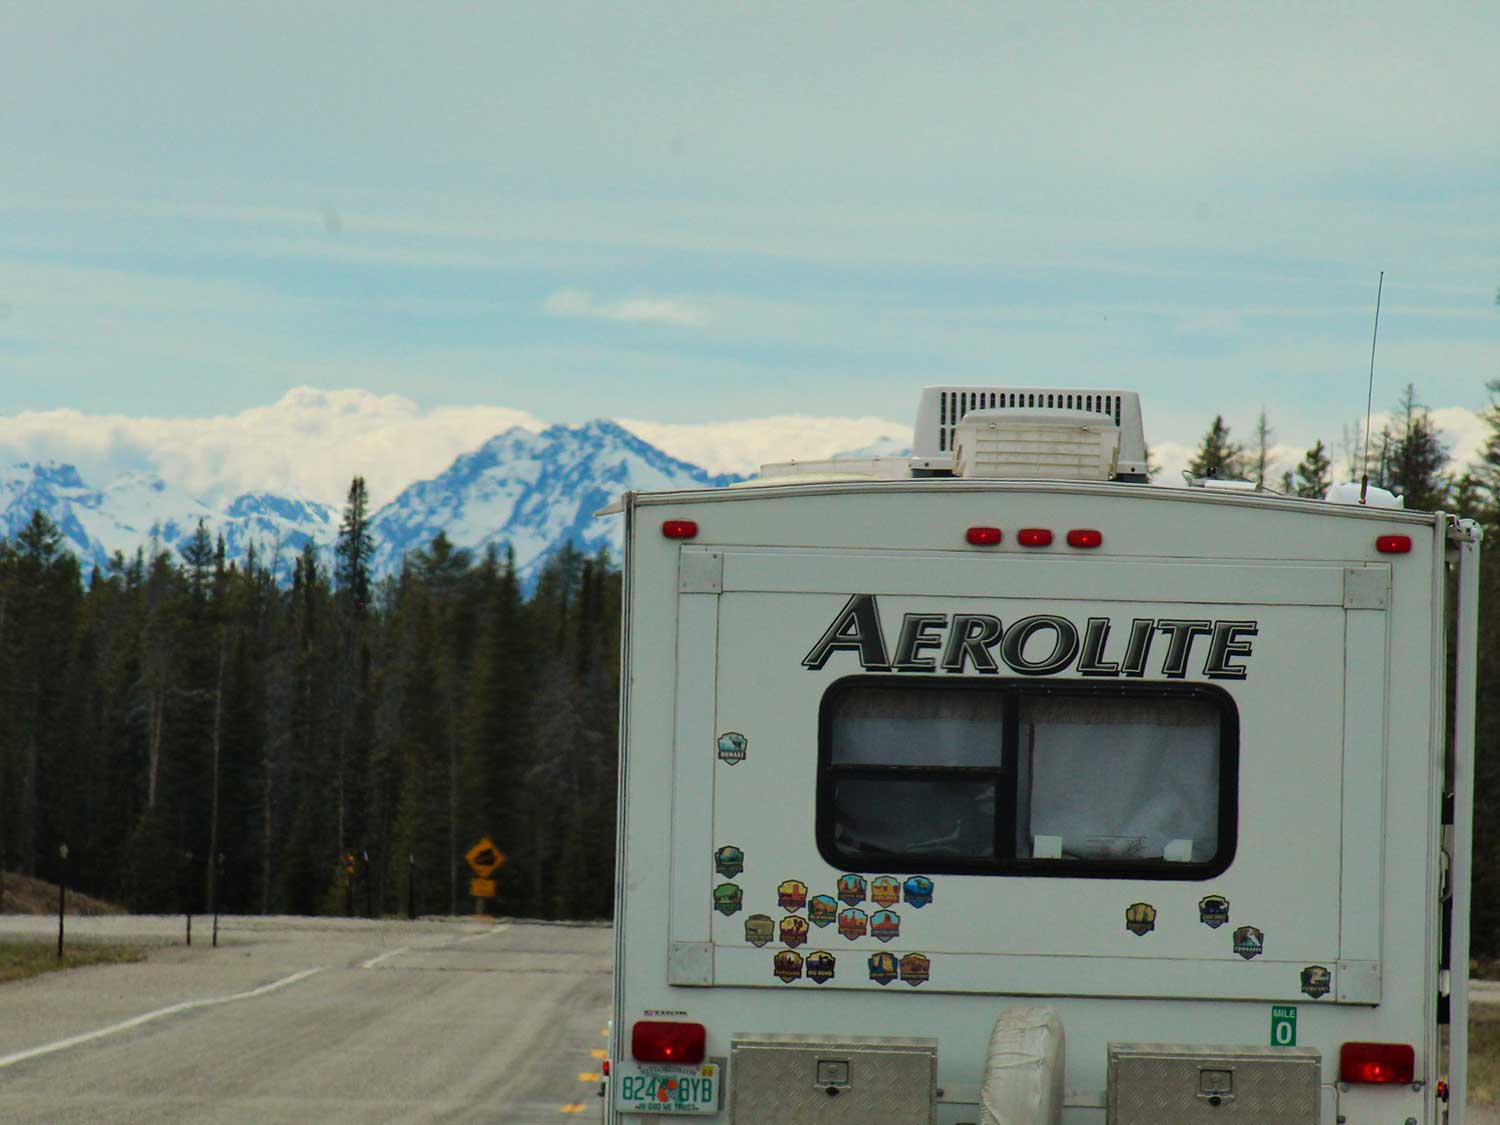 RV on the road with GPS towards mountains.